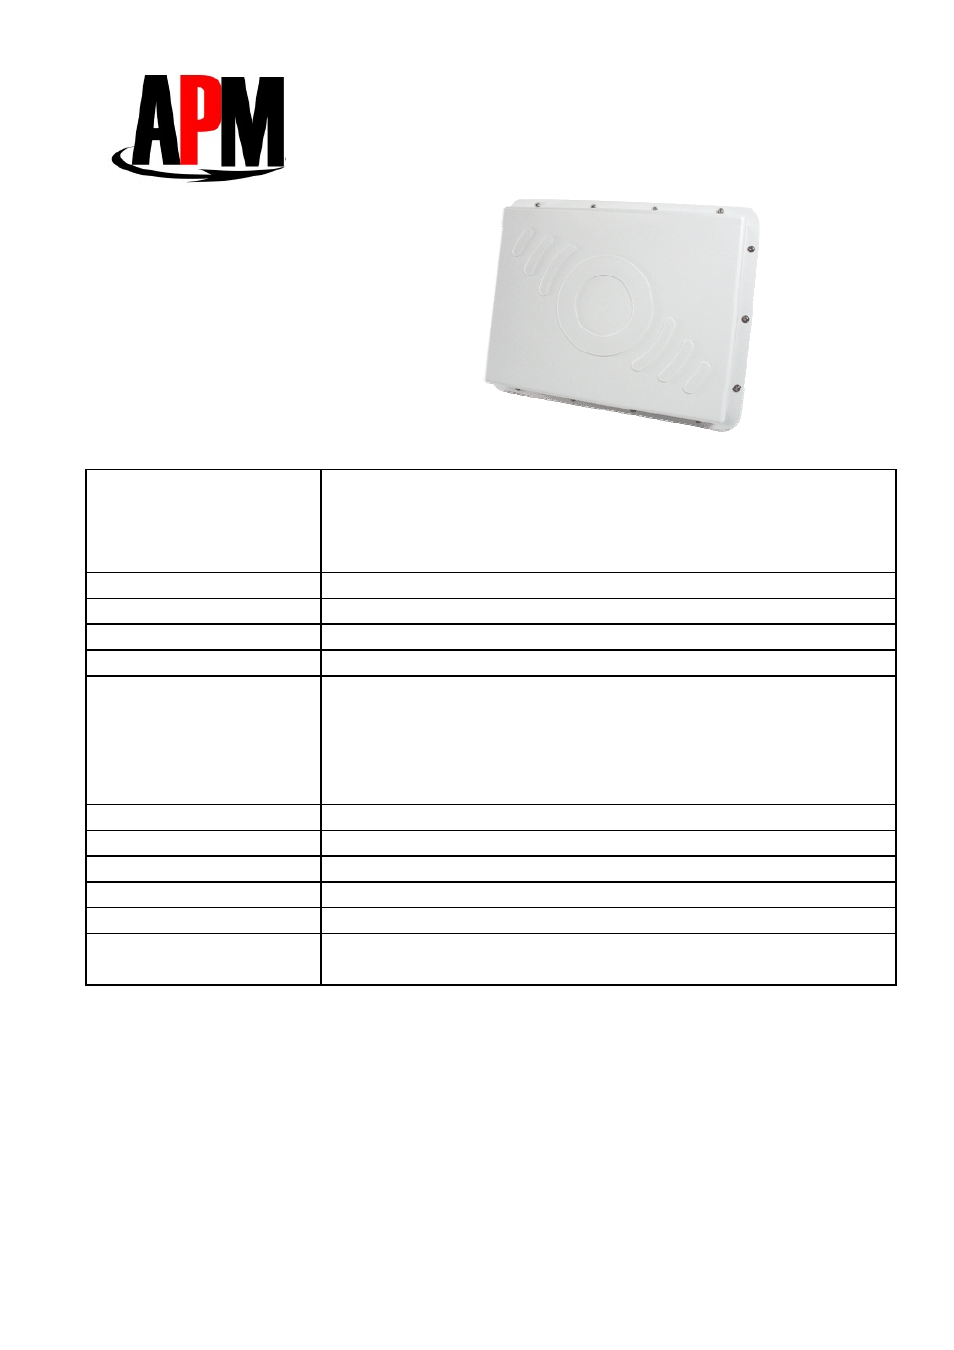 APM APE-502401a-1 User Manual | 2 pages